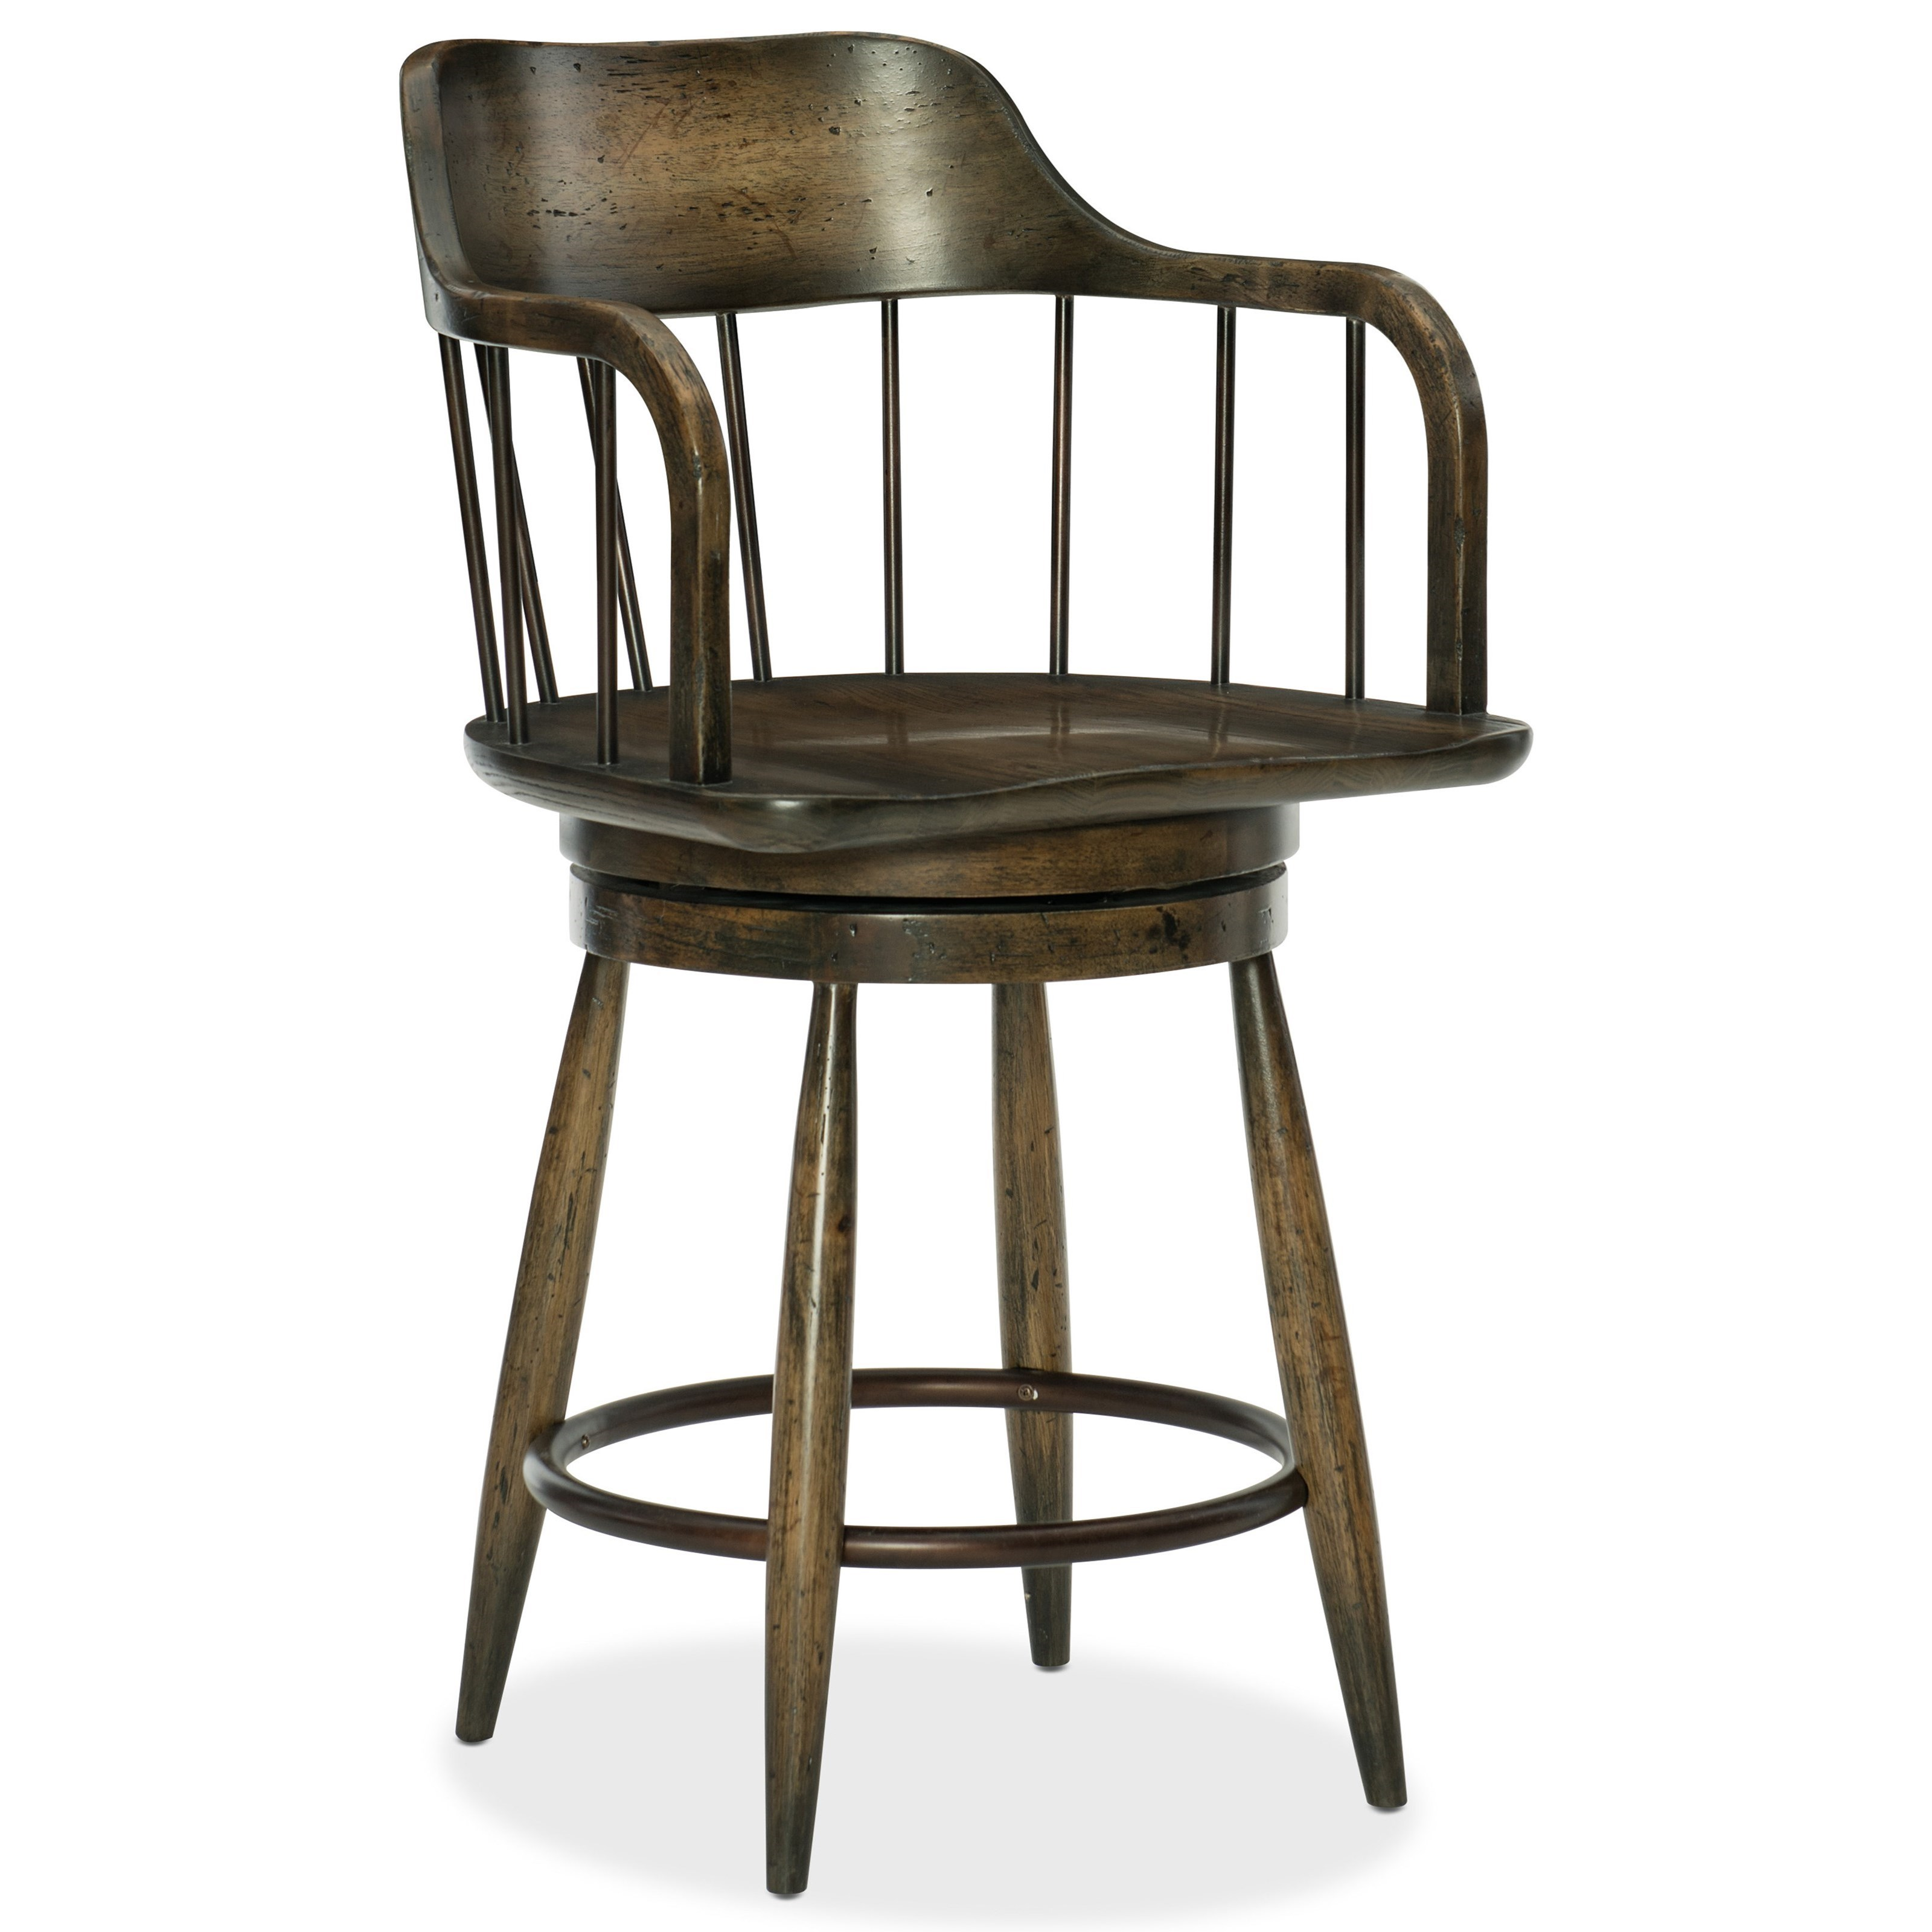 Hooker Furniture American Life-Crafted Counter Stool - Item Number: 1654-25350-DKW1